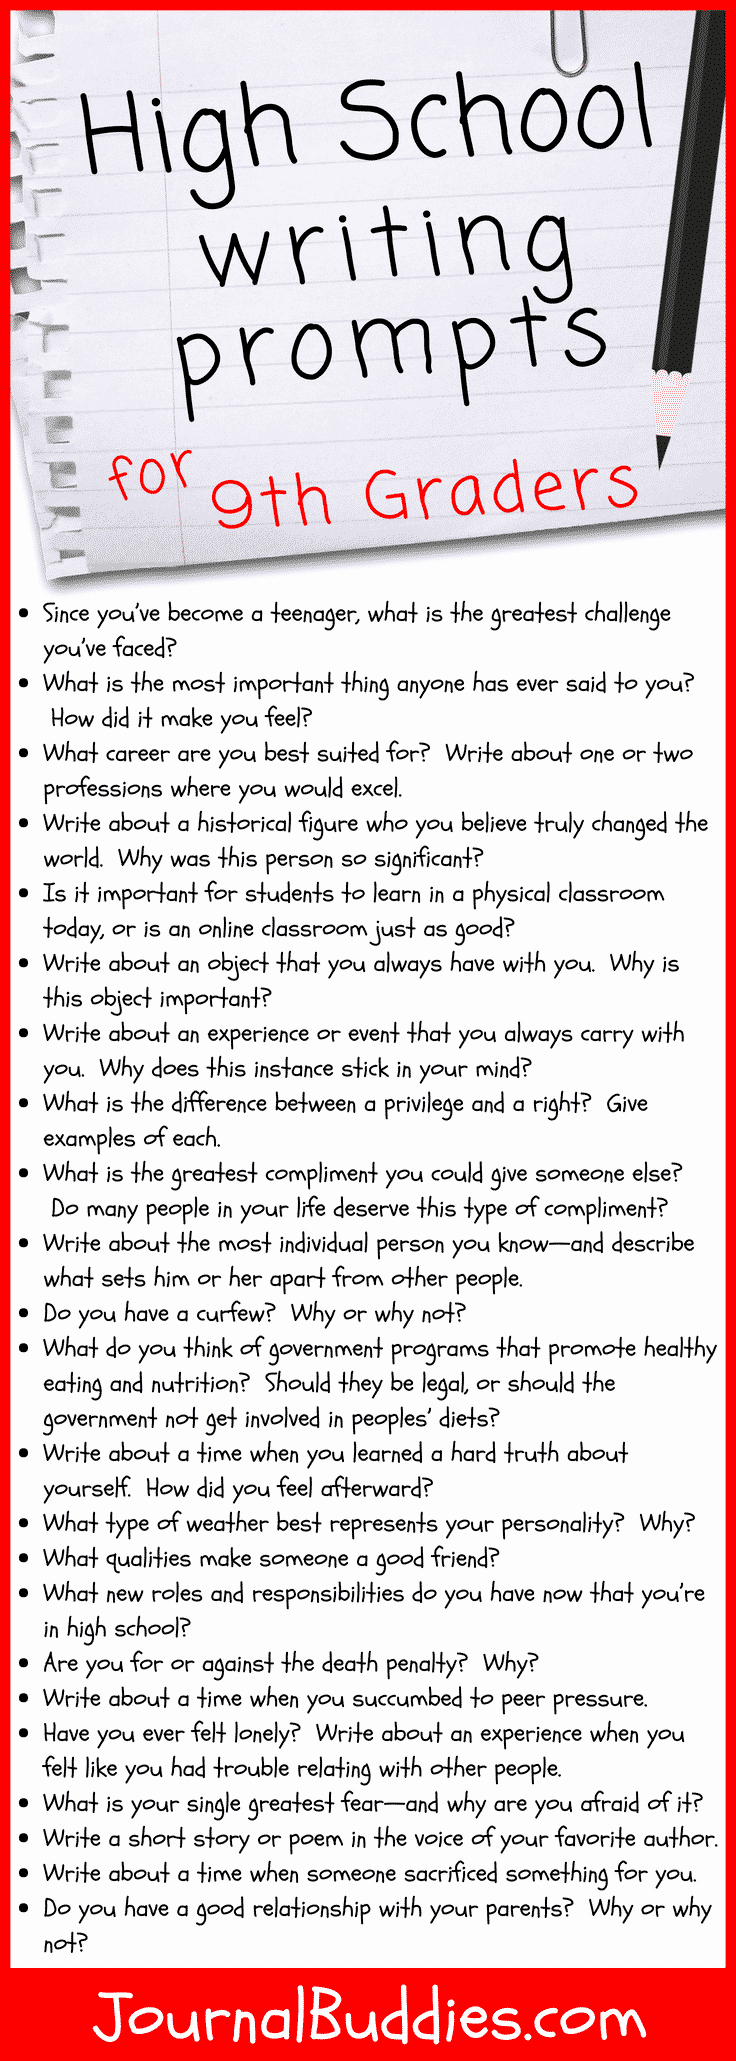 9th Grade Writing Worksheets Awesome 31 High School Writing Prompts for 9th Graders